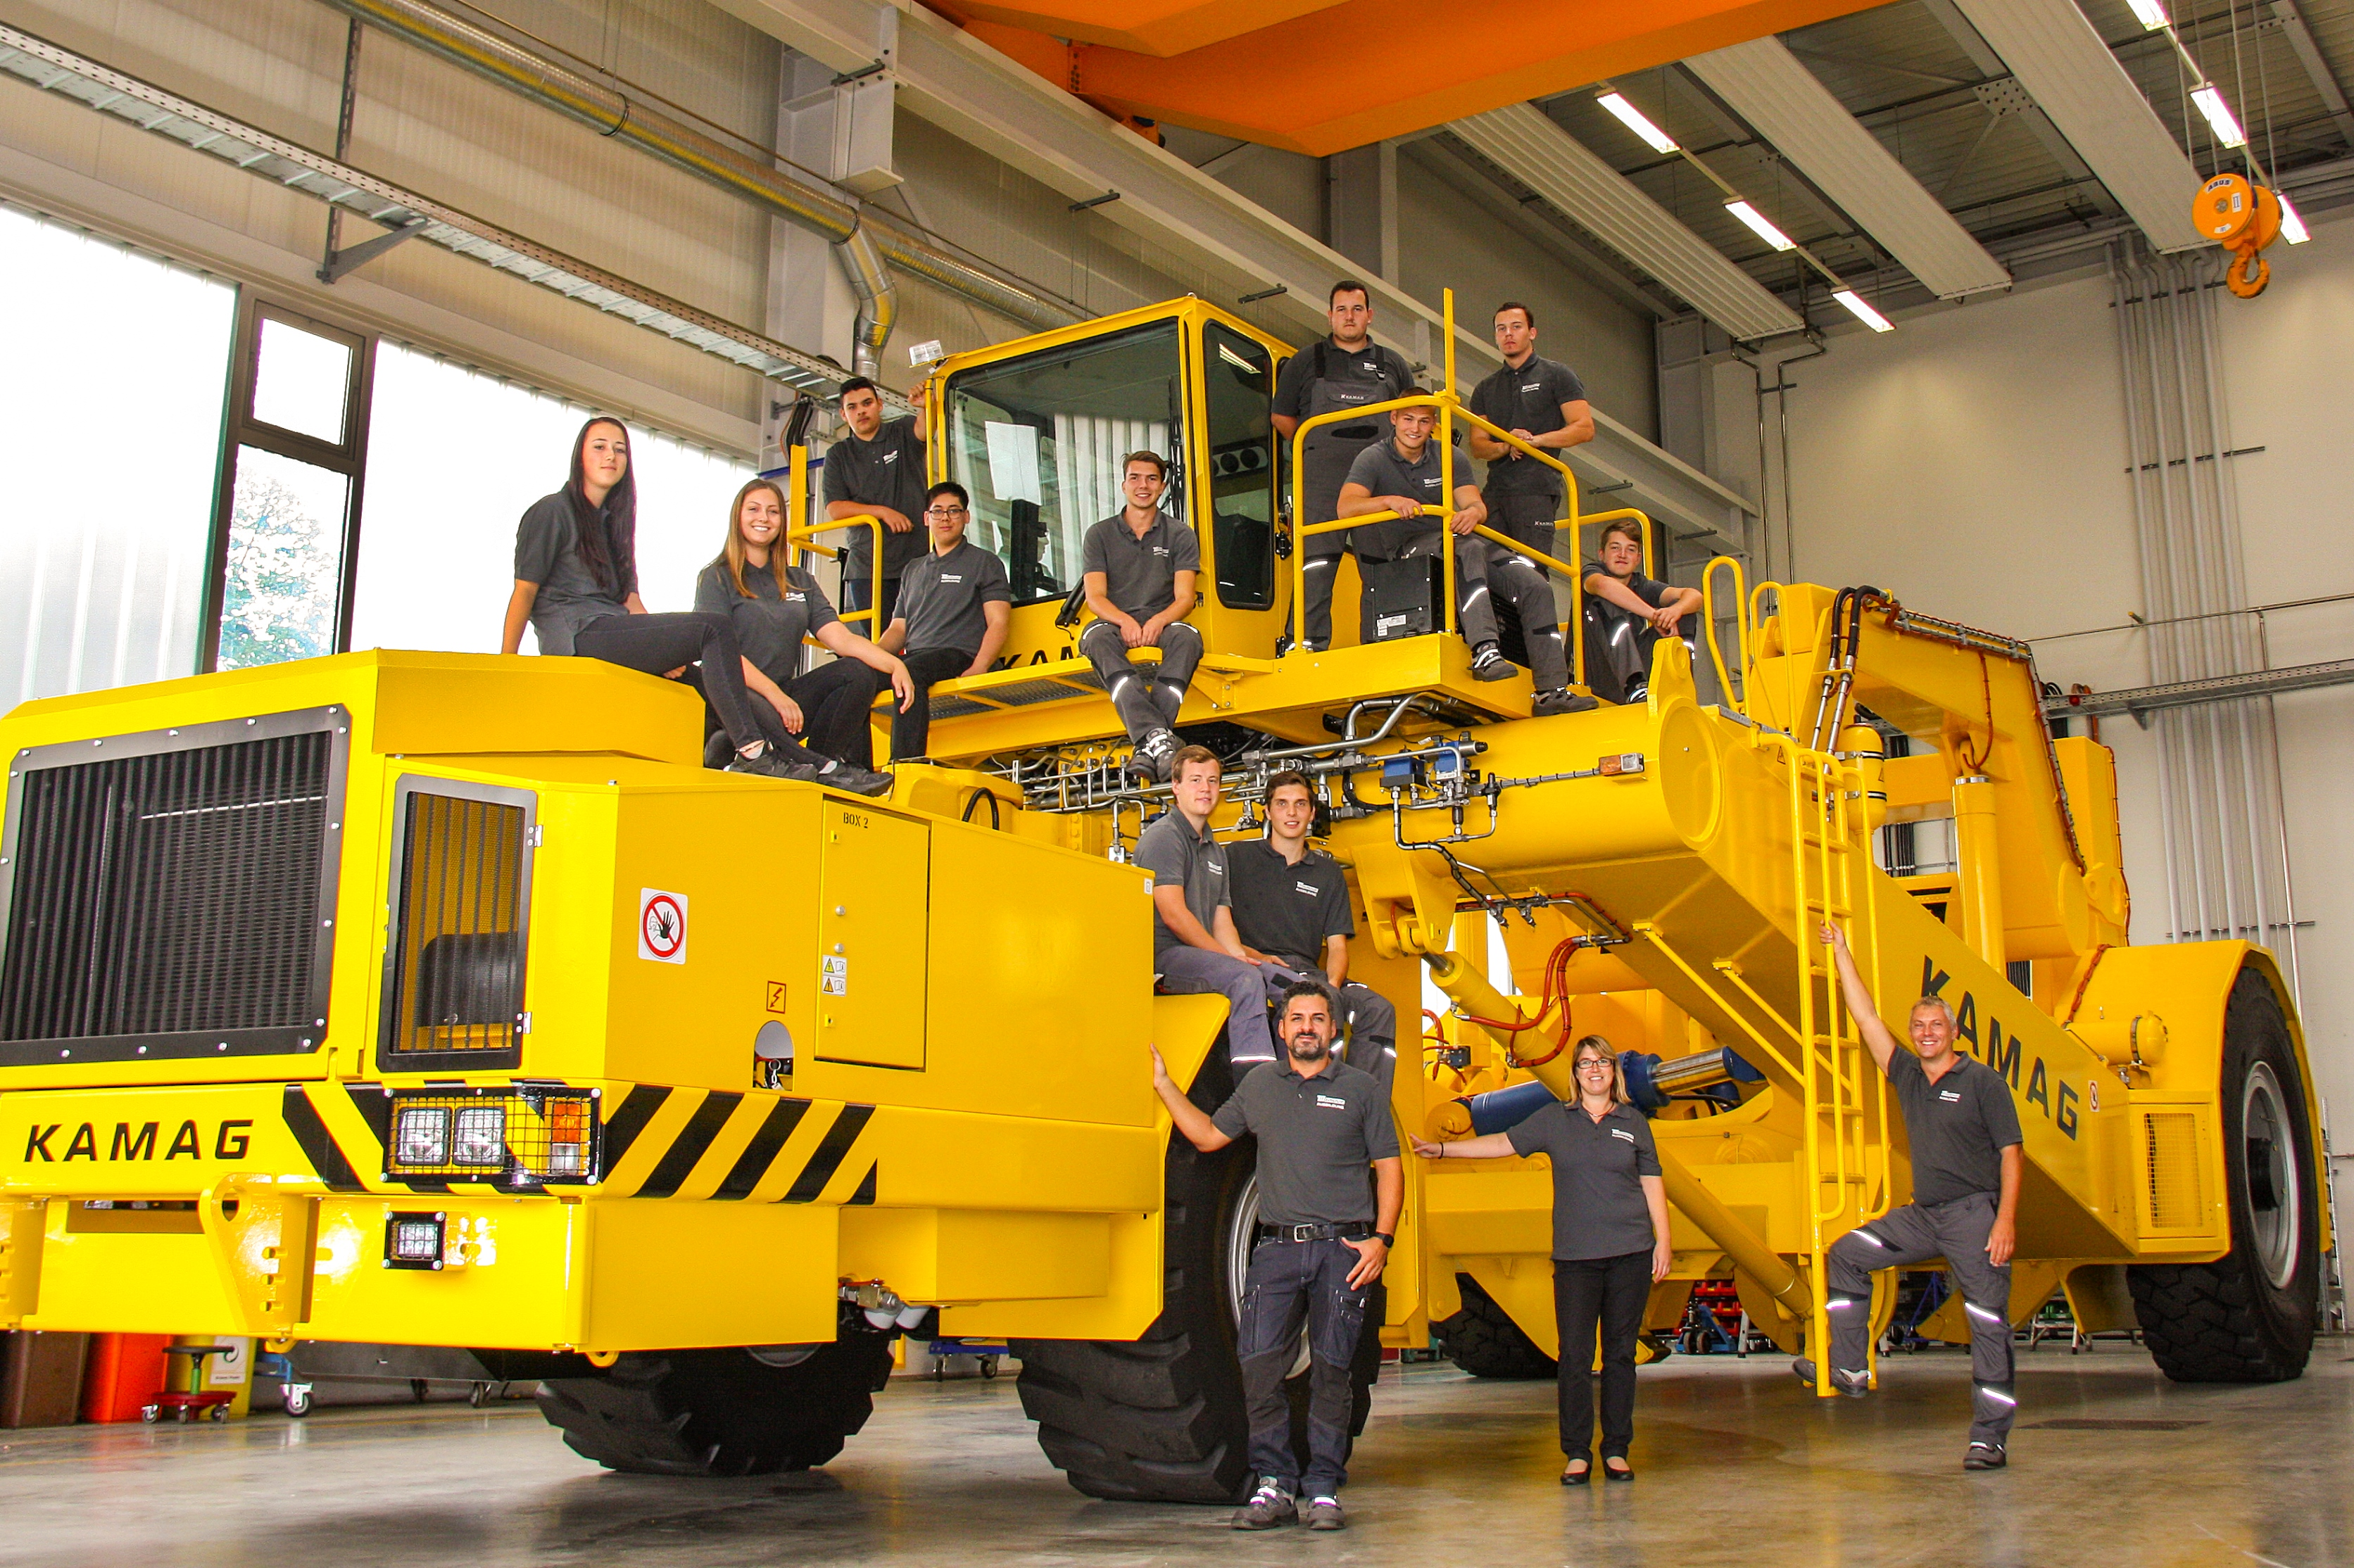 Kamag apprentices (including the new intake) together with their training supervisors explore a slab carrier (special vehicle for the transport of cast steel).